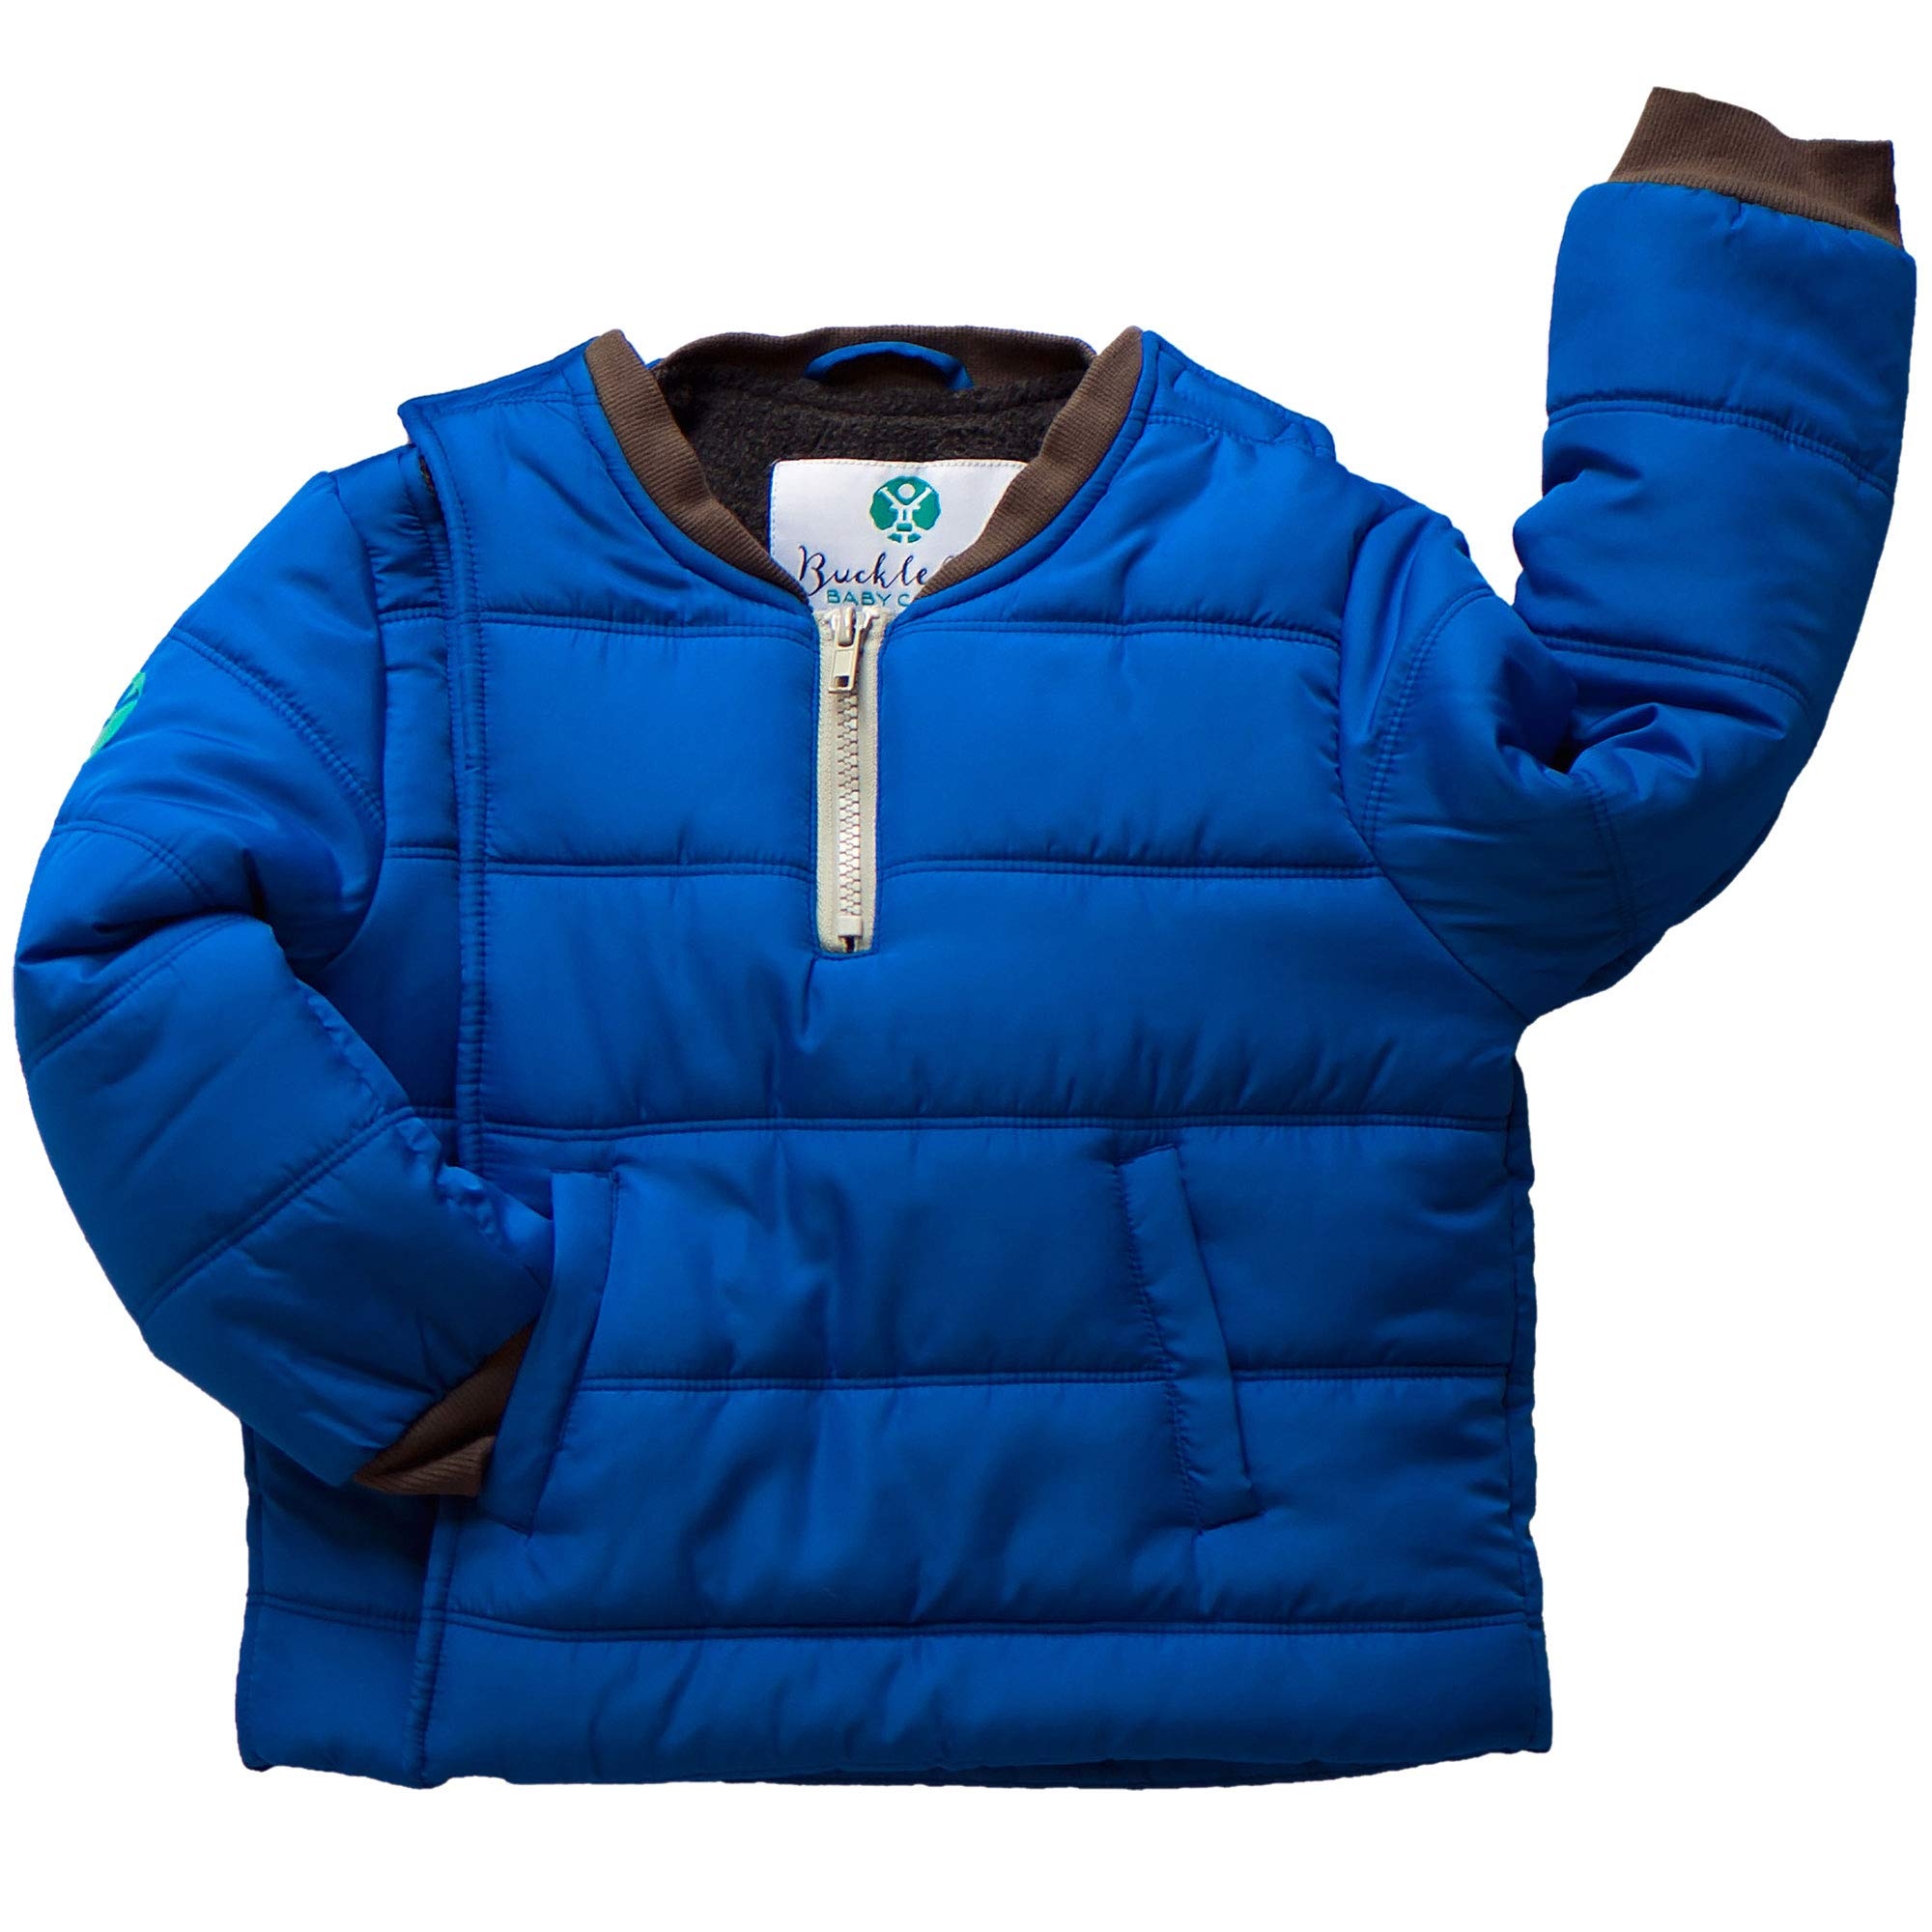 Buckle Me Baby Coat - Safer Car Seat Boys Winter Jacket - Deepest of Oceans Blue - Size 3T by Buckle Me Baby Coats